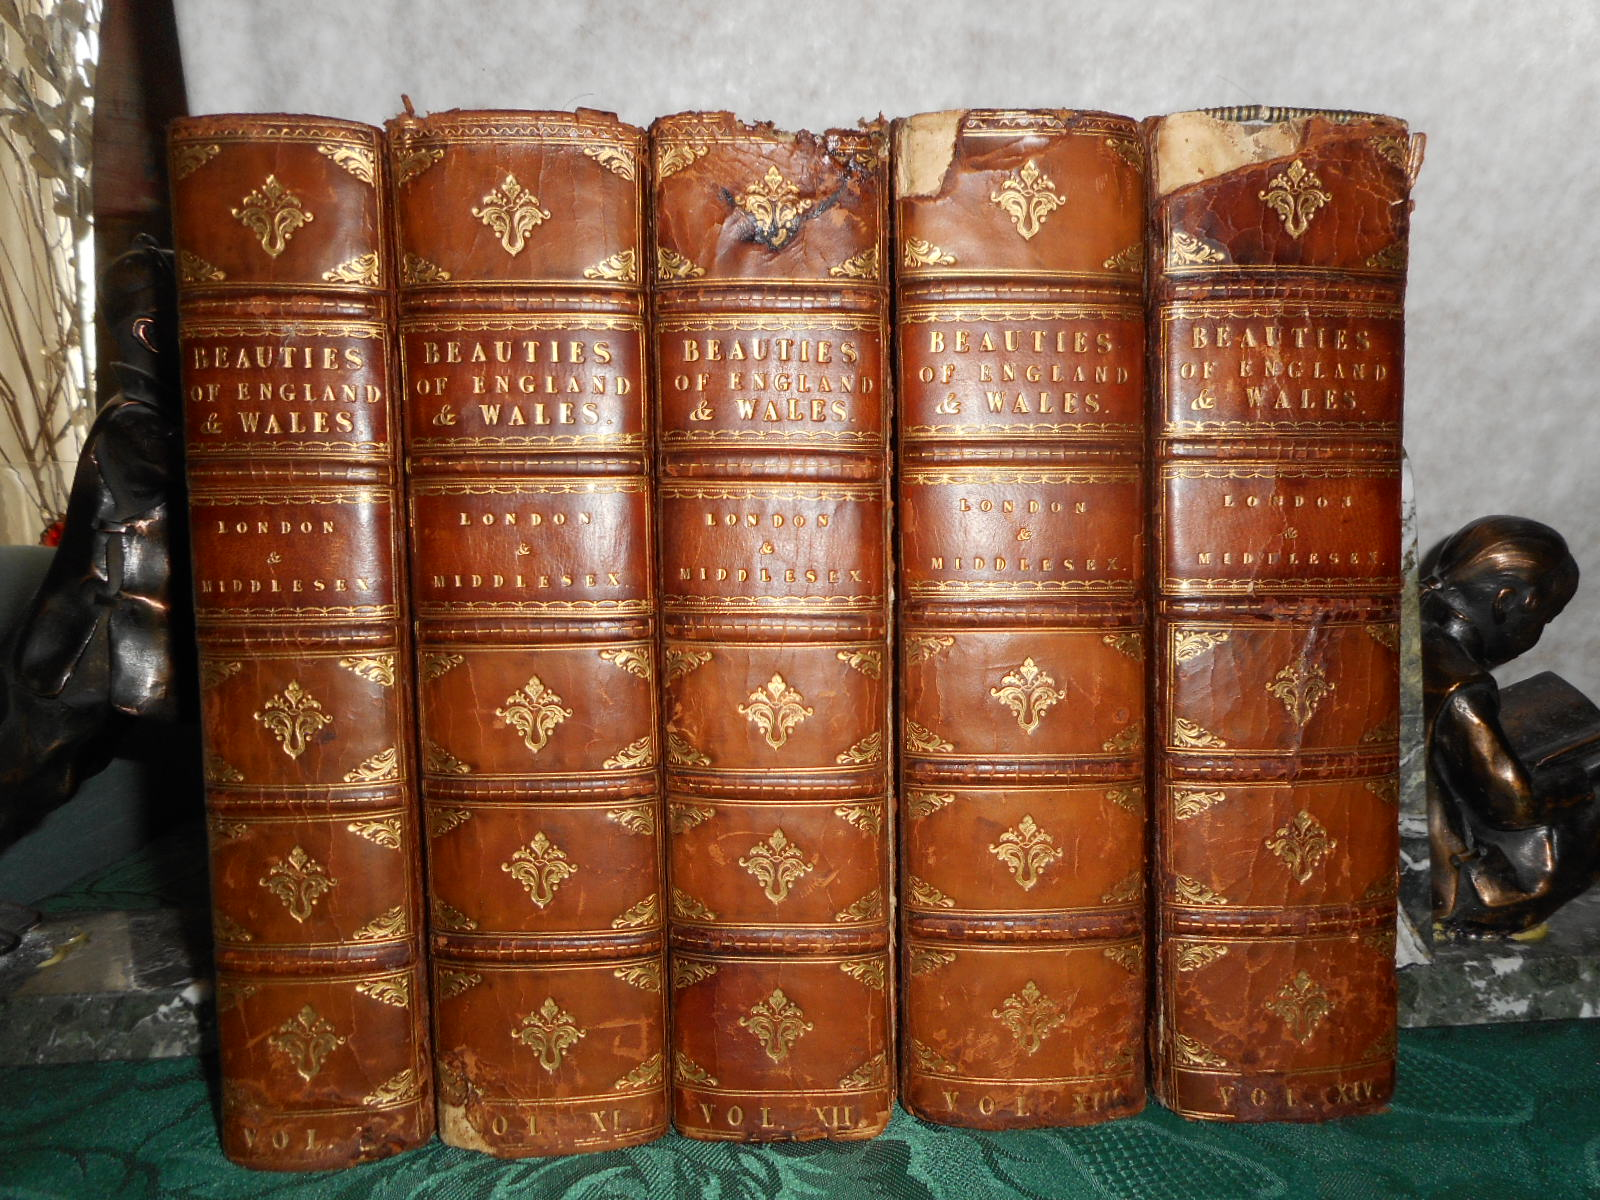 Image for The Beauties of England and Wales: Or, Delineations, Topographical, Historical, and Descriptive. Volume X - 5 Volumes - LONDON and MIDDLESEX Complete.